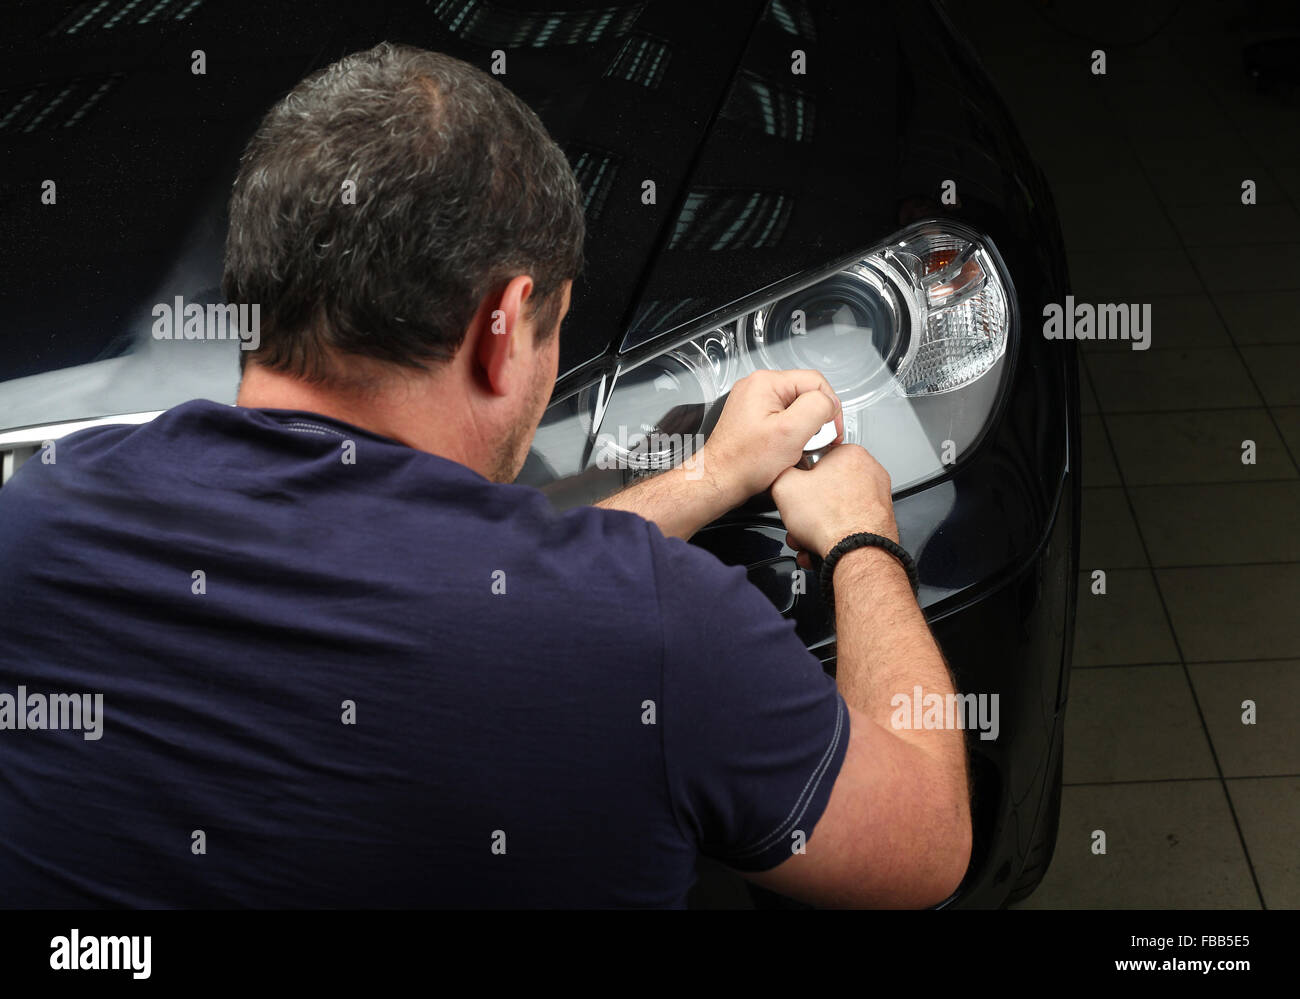 The worker polishes optics of headlights of the car with the electric tool. Close up - Stock Image